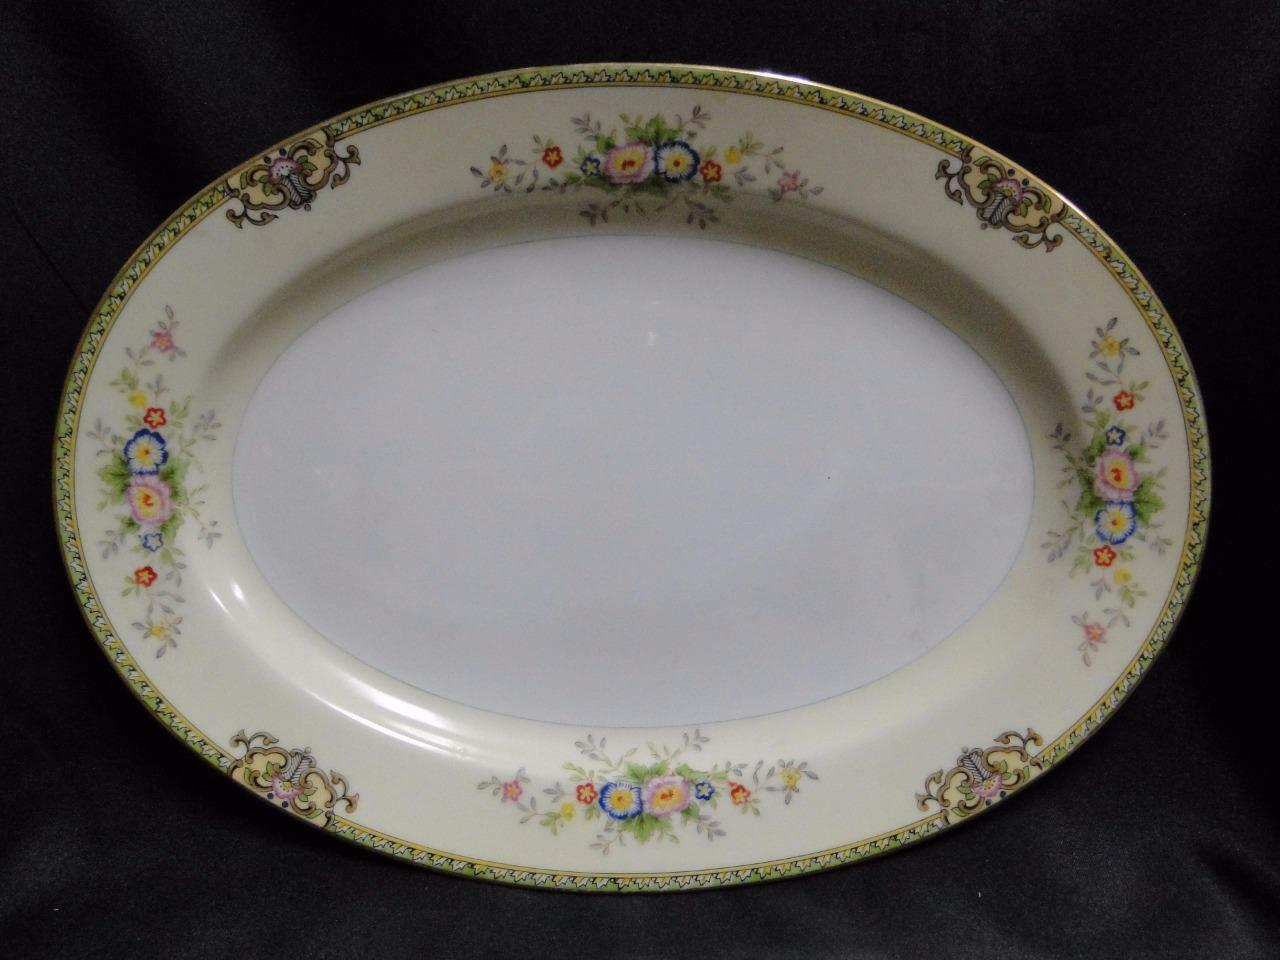 "Meito Floral with Green Trim, Gold Edge: Oval Serving Platter 11 3/4"" x 8 3/8"""